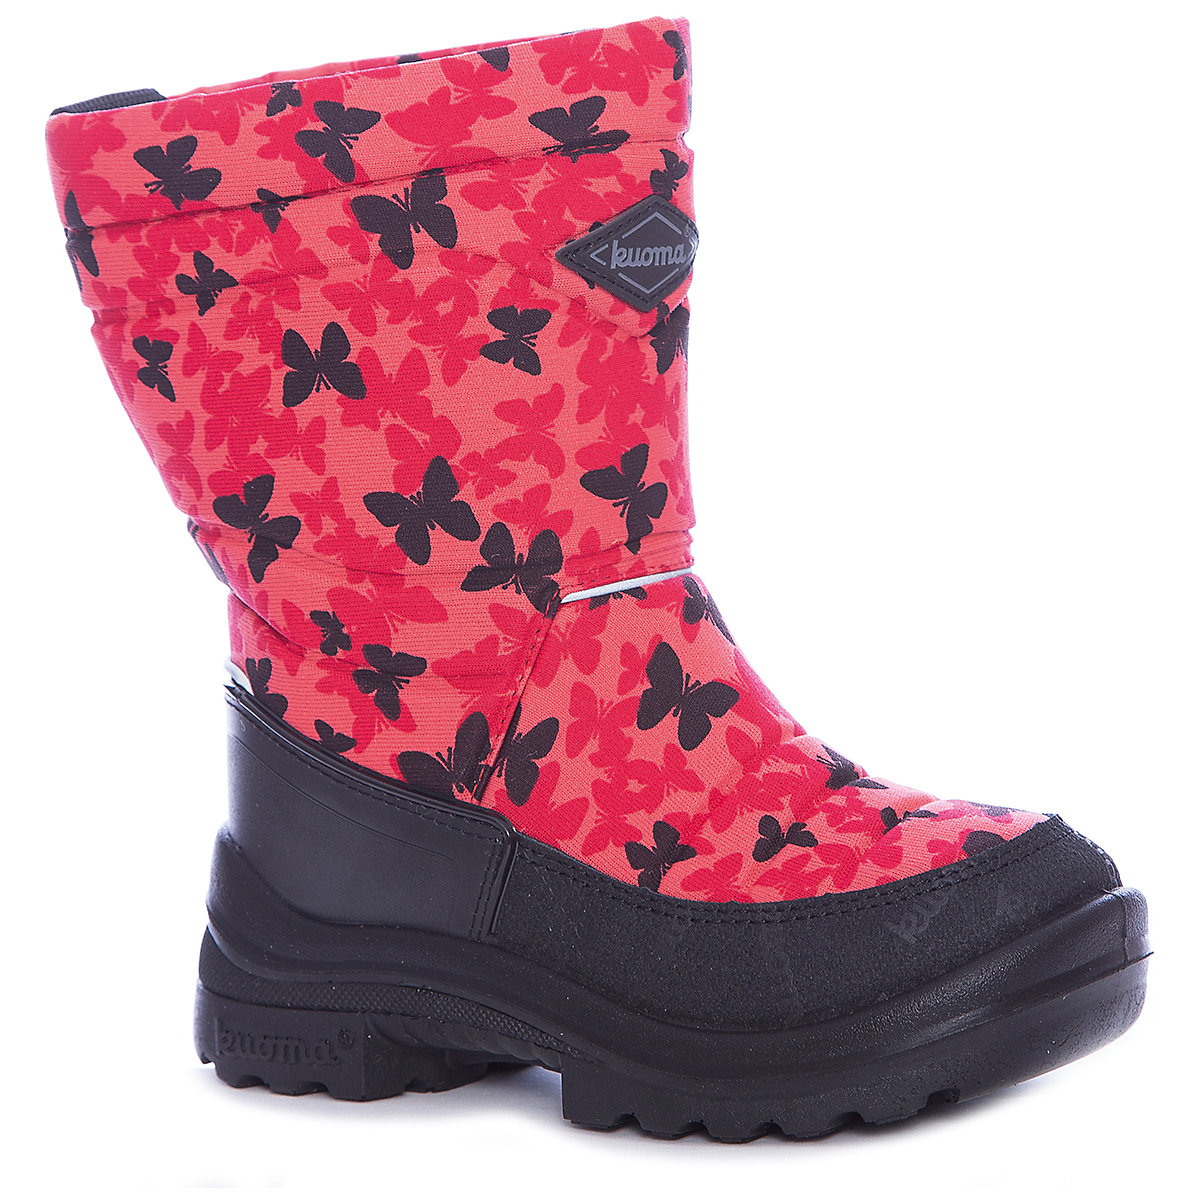 Boots KUOMA for girls 7047231 Valenki Uggi Winter Baby Kids Children shoes